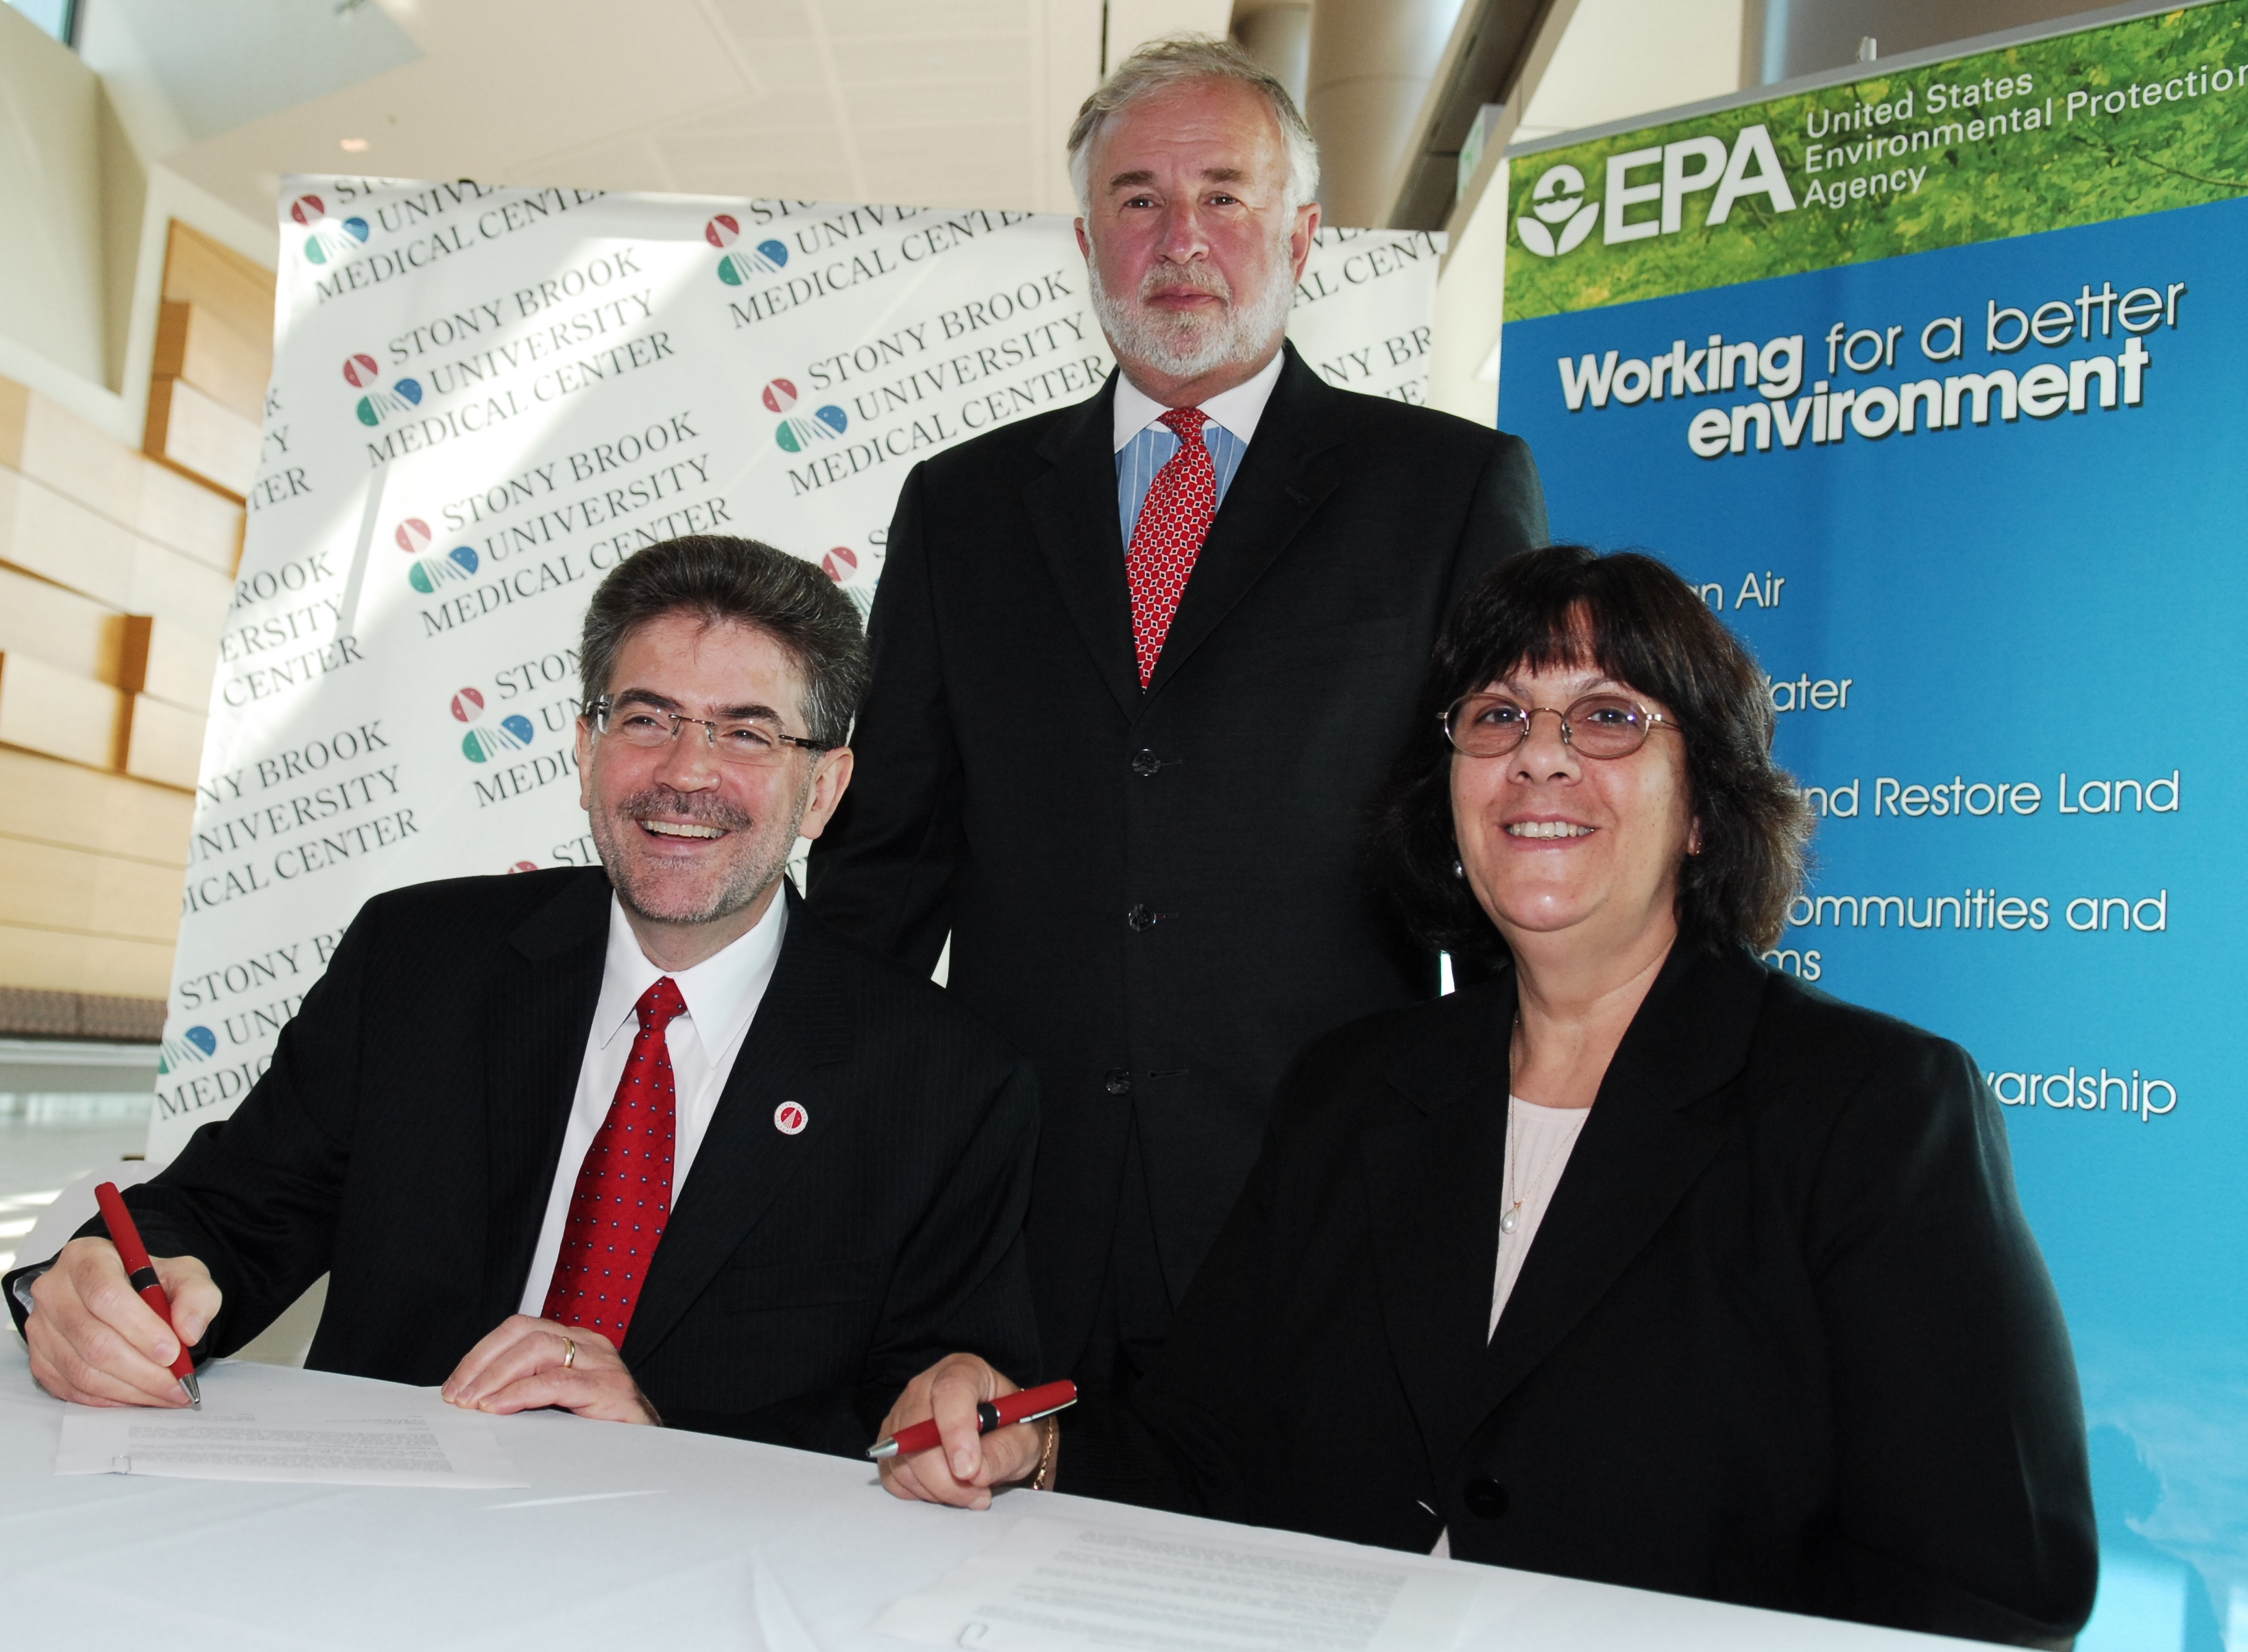 Steven Strongwater, CEO of SBUMC; Congressman Tim Bishop; and Barbara Finazzo, EPA acting deputy regional administrator